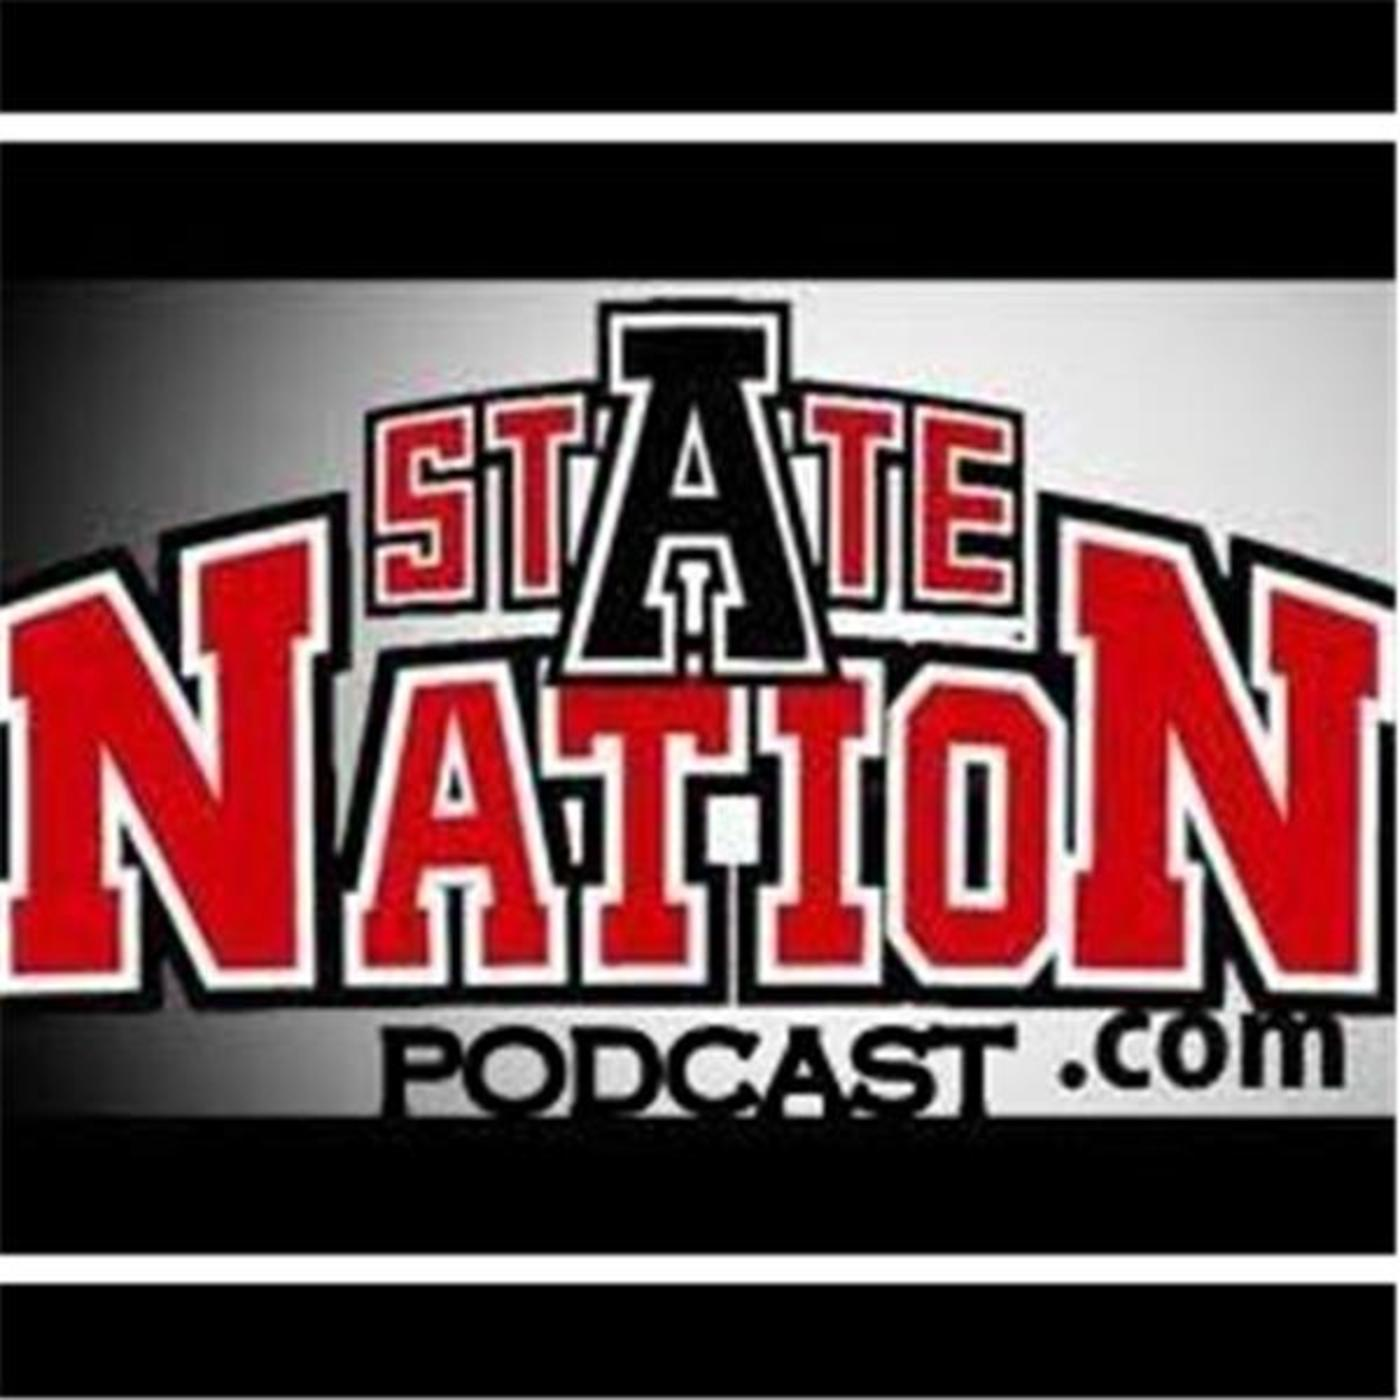 AstateNation Podcast